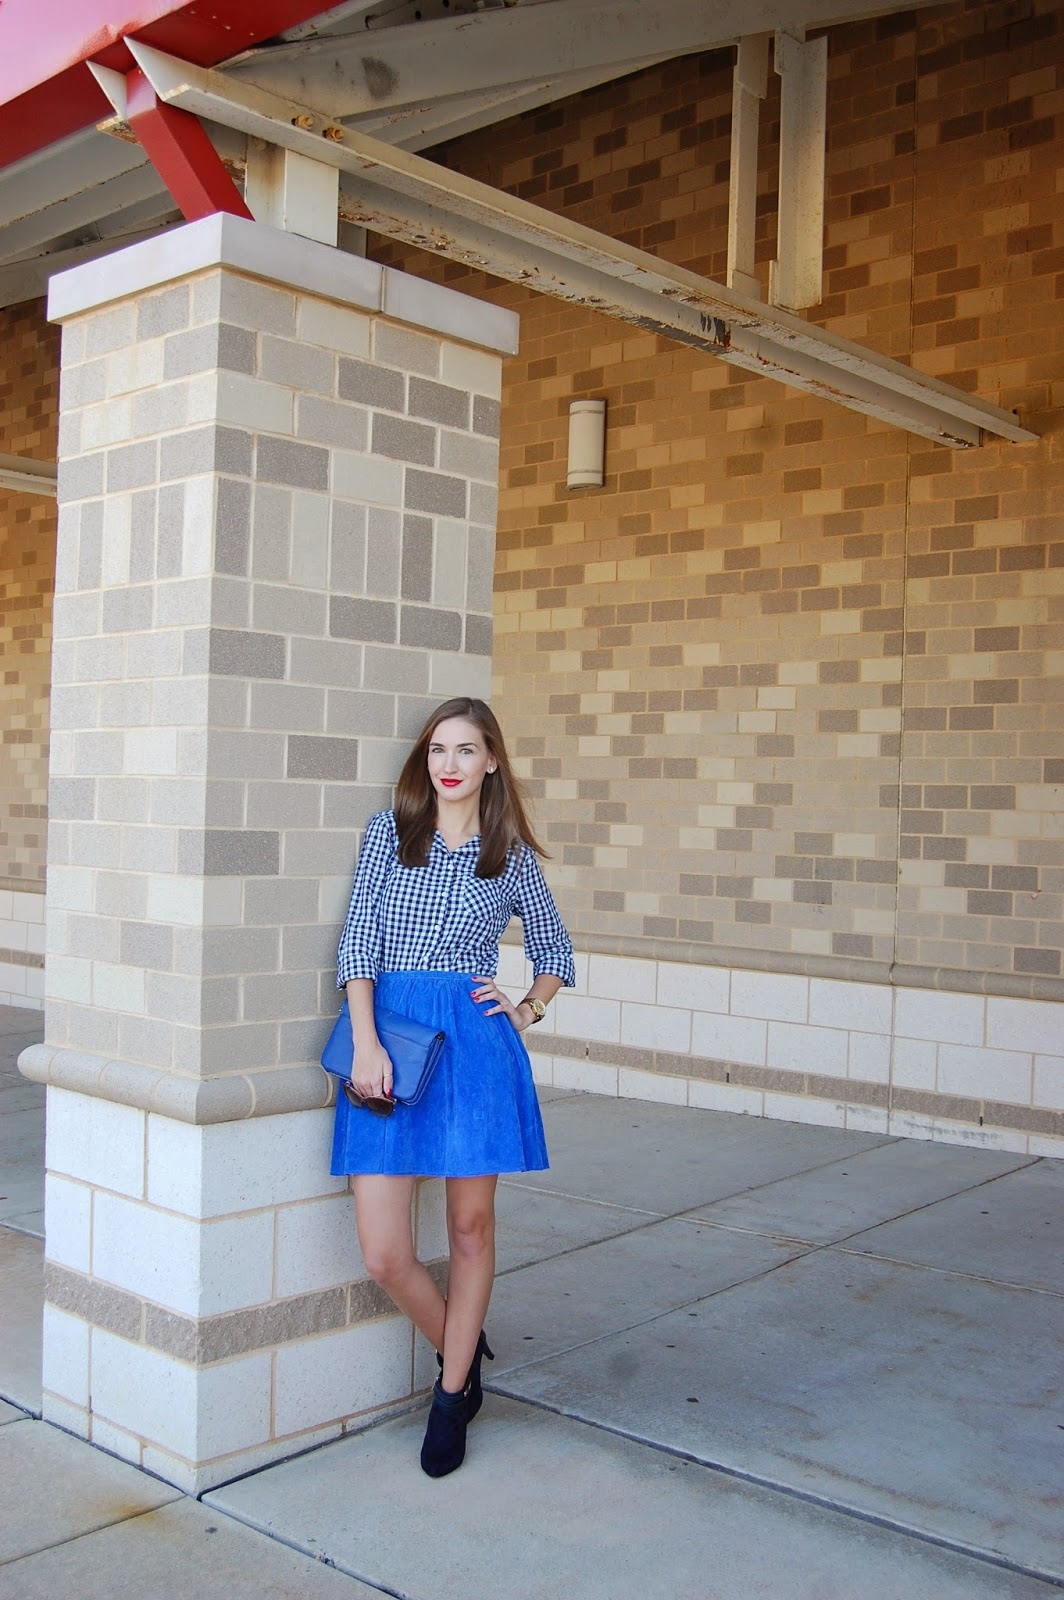 Wearing blue monochrome look, J.Crew Factory navy gingham top, Patterson J. Kincaid cobalt suede skirt, fall 2014 look